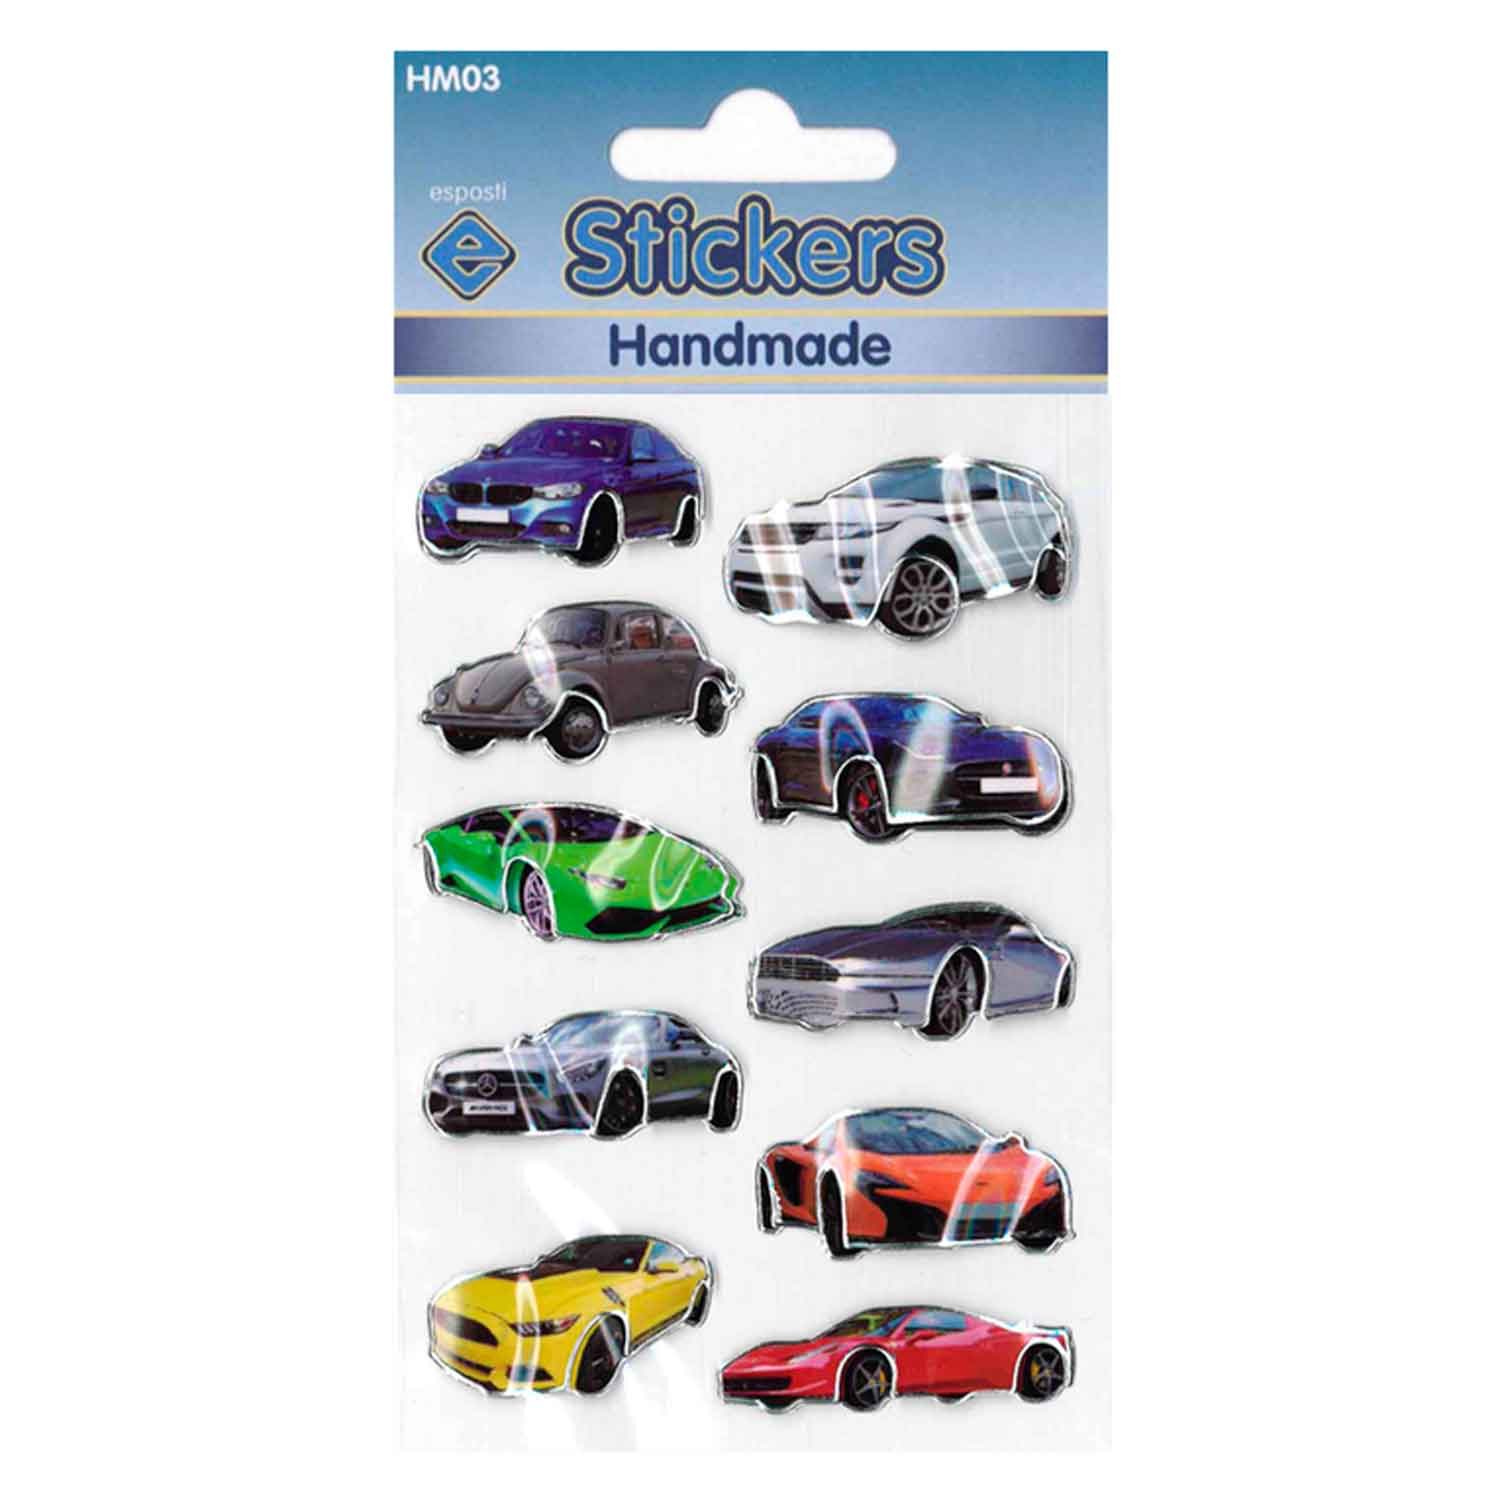 Esposti Handmade Cars Self Adhesive Novelty Stickers - Pack of 10